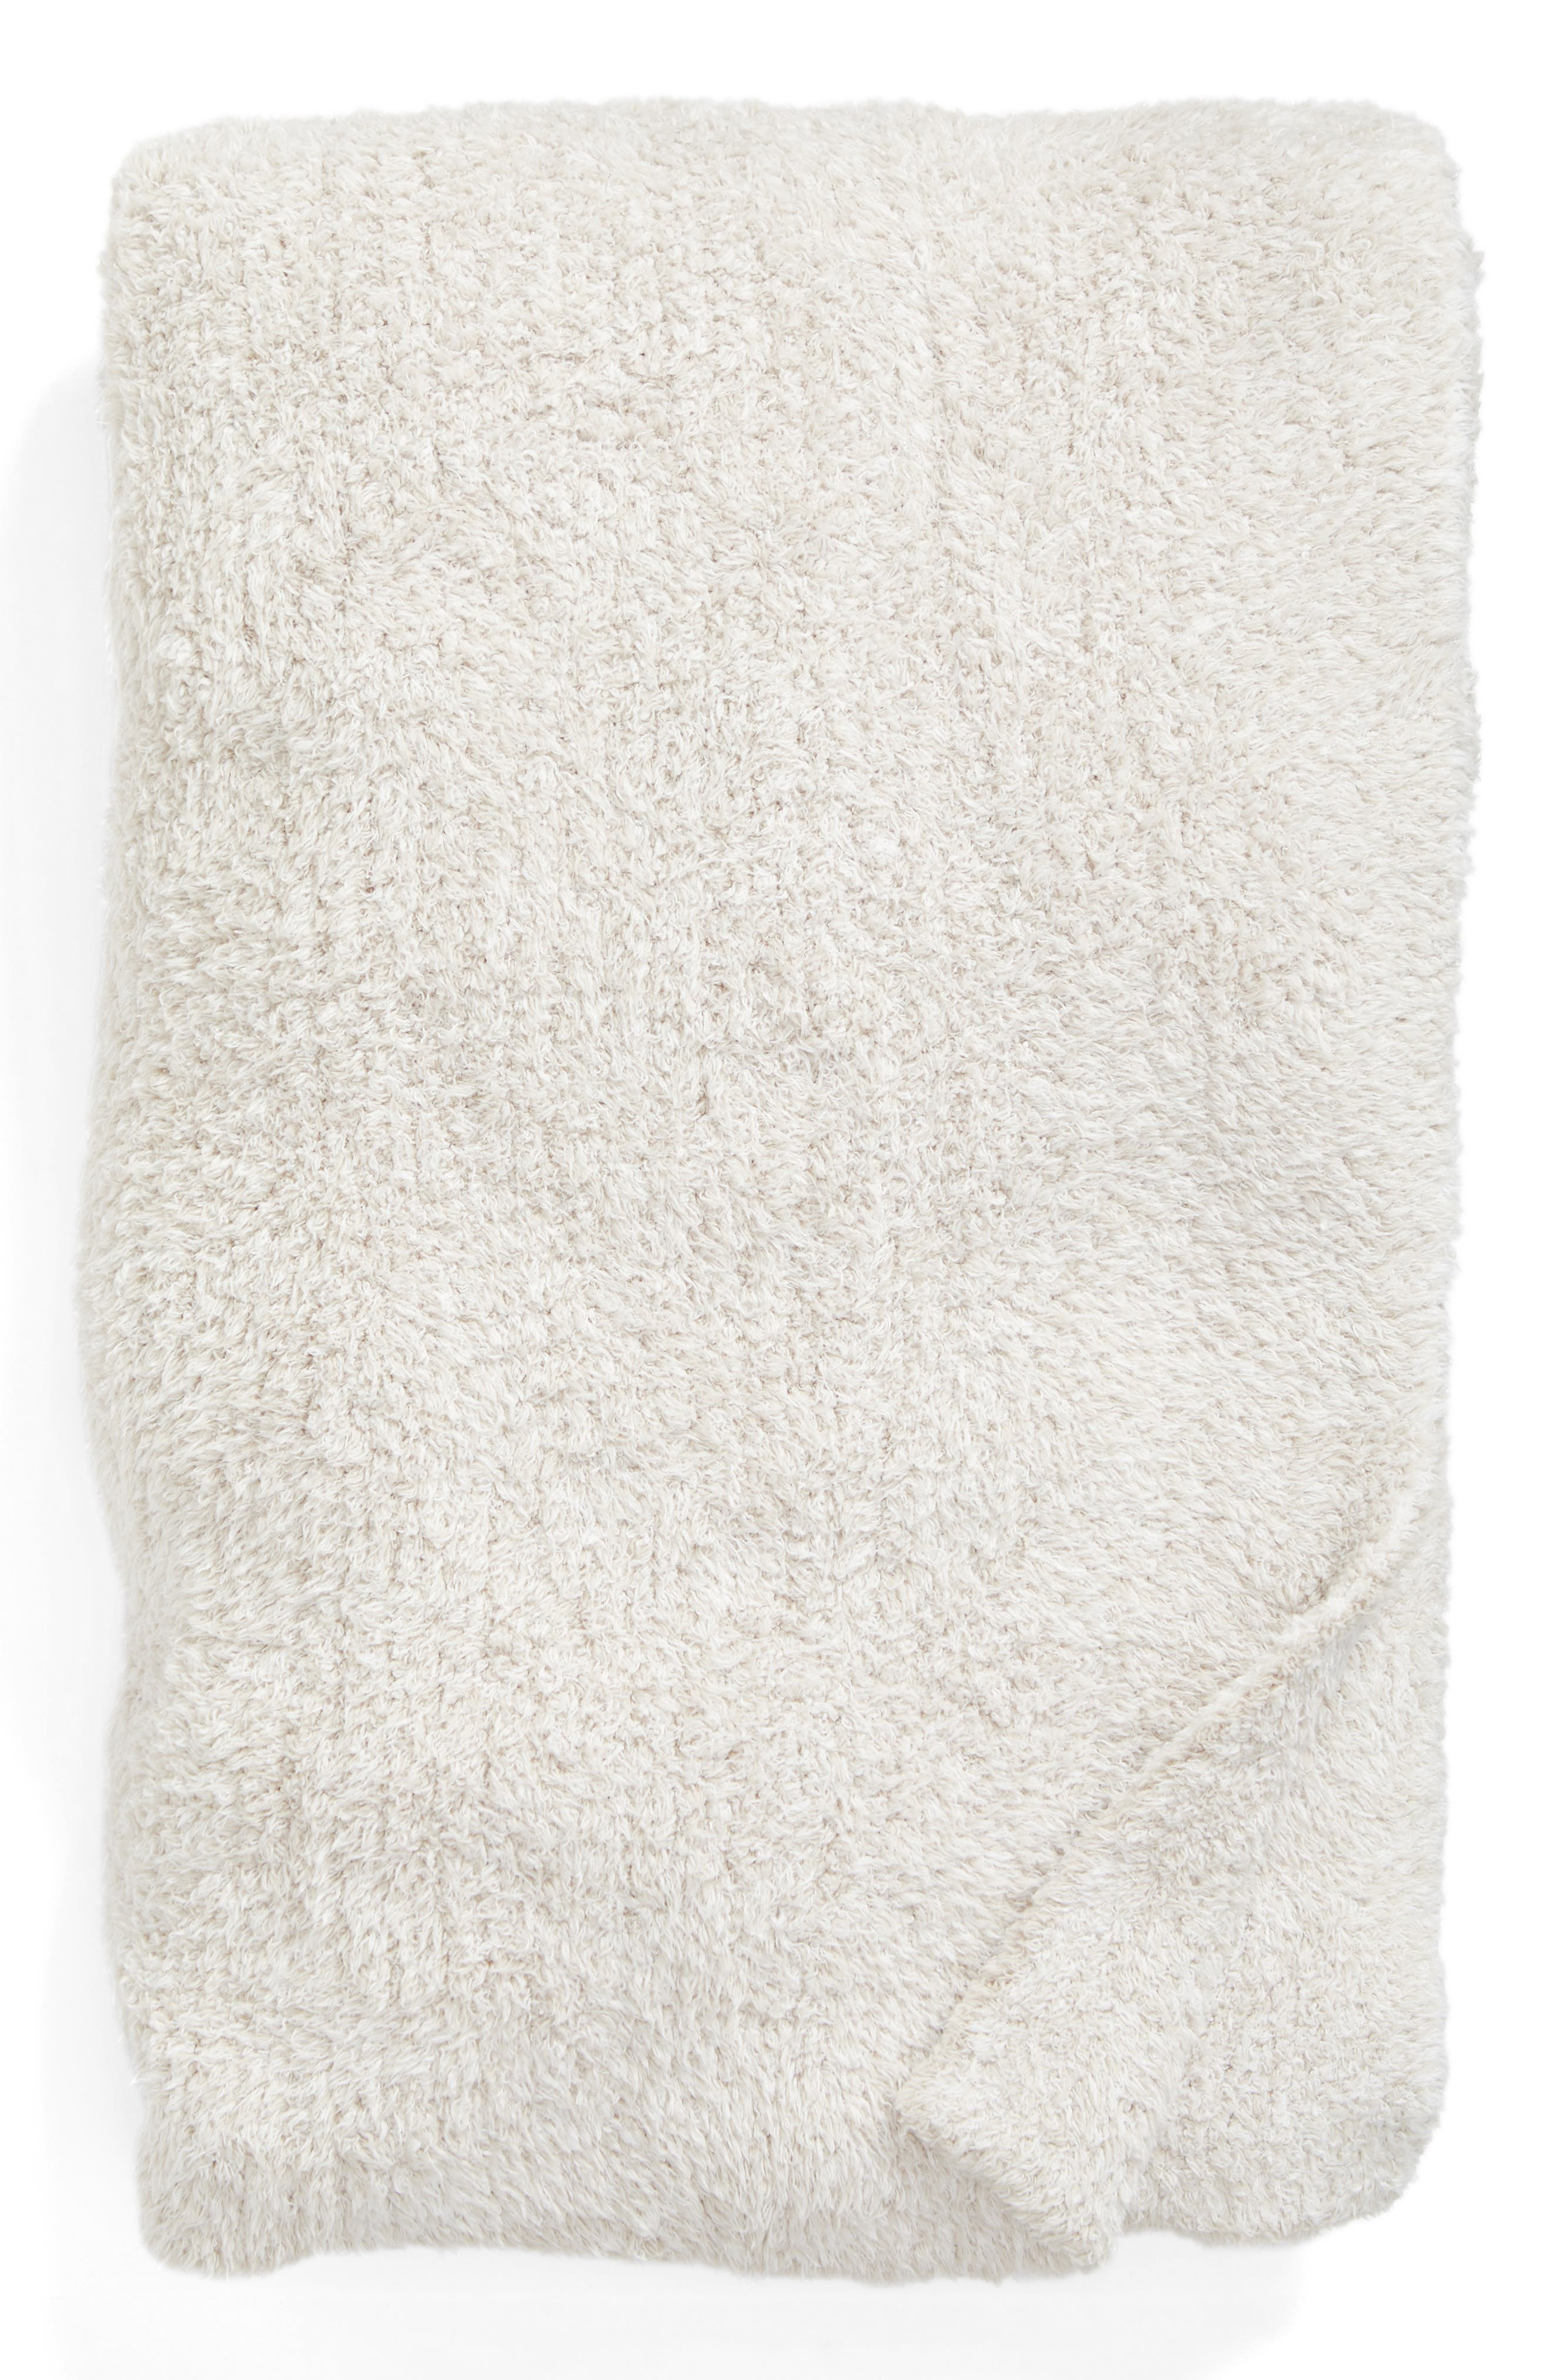 Cozychic<sup>®</sup> Heathered Throw Blanket,                             Main thumbnail 1, color,                             STONE/ WHITE